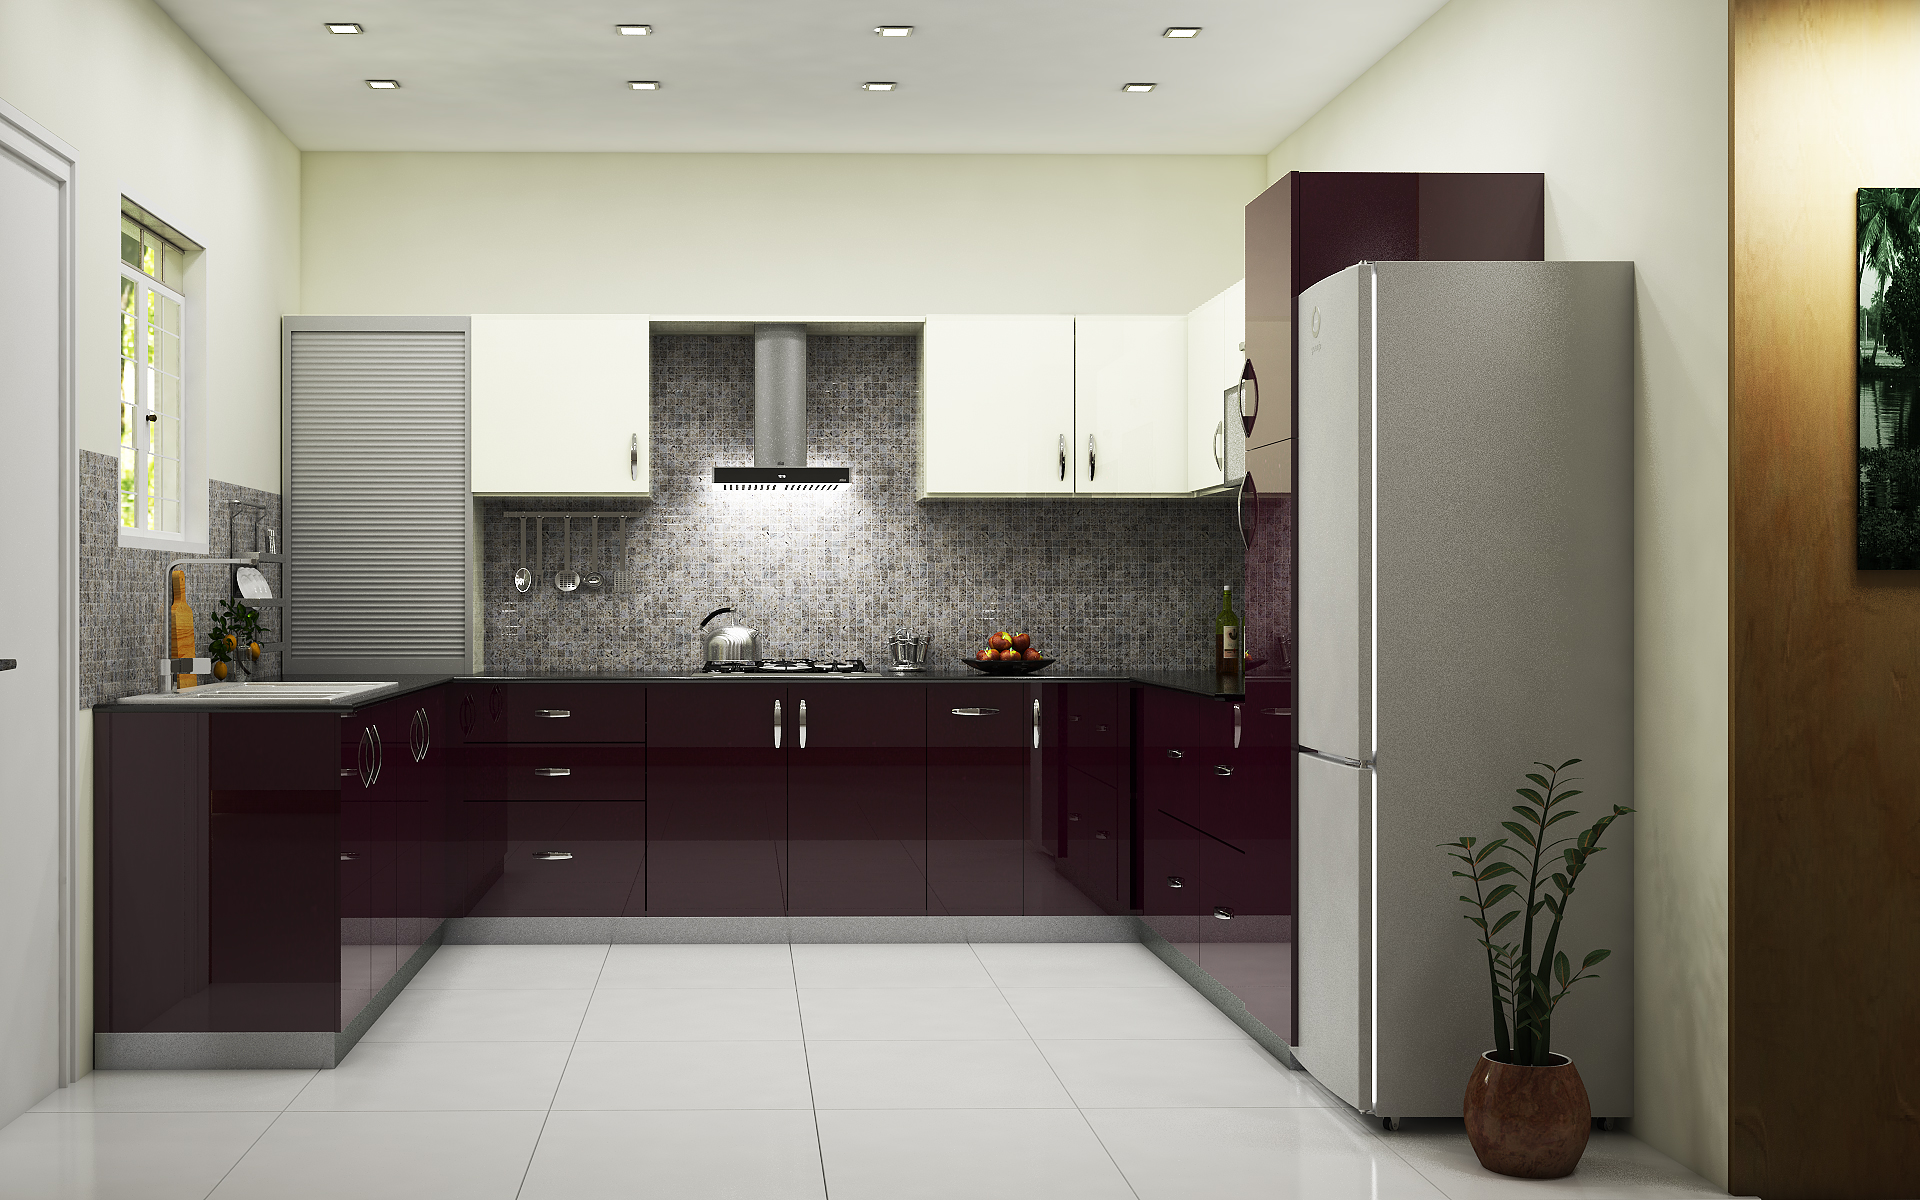 u shaped modular kitchen designs & prices - homelane india